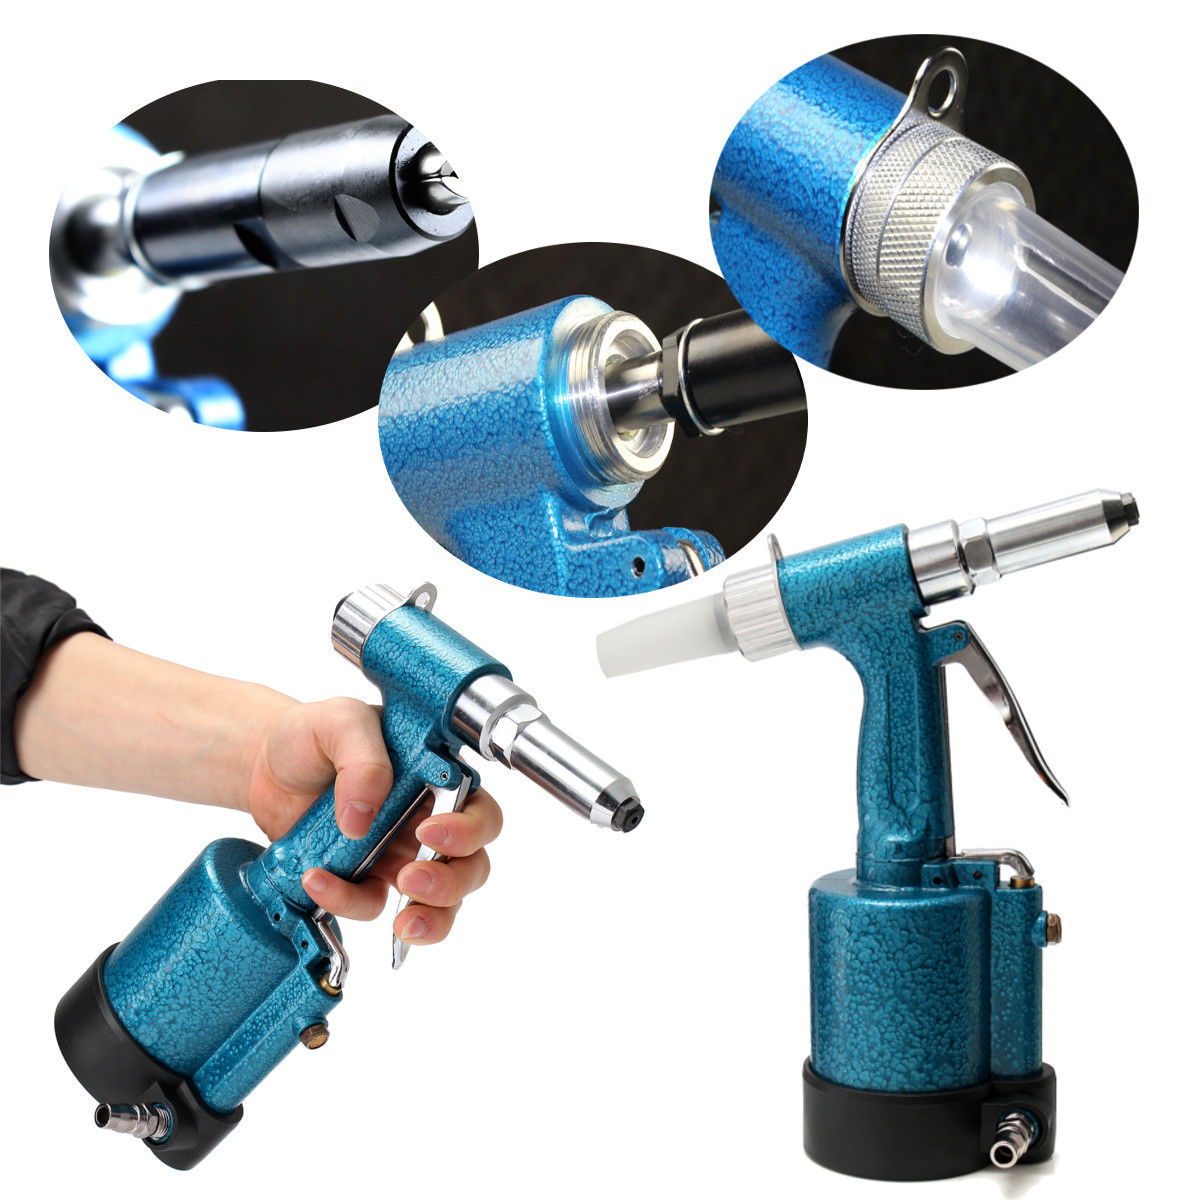 1/4 Pneumatic Air Hydraulic Pop Rivet Gun Riveter Riveting Garage Tool w/Wrench FREE SHIP free shipping high quality taiwan air riveter gun pneumatic riveters pneumatic rivet gun riveting tool 2 4mm 4 8mm